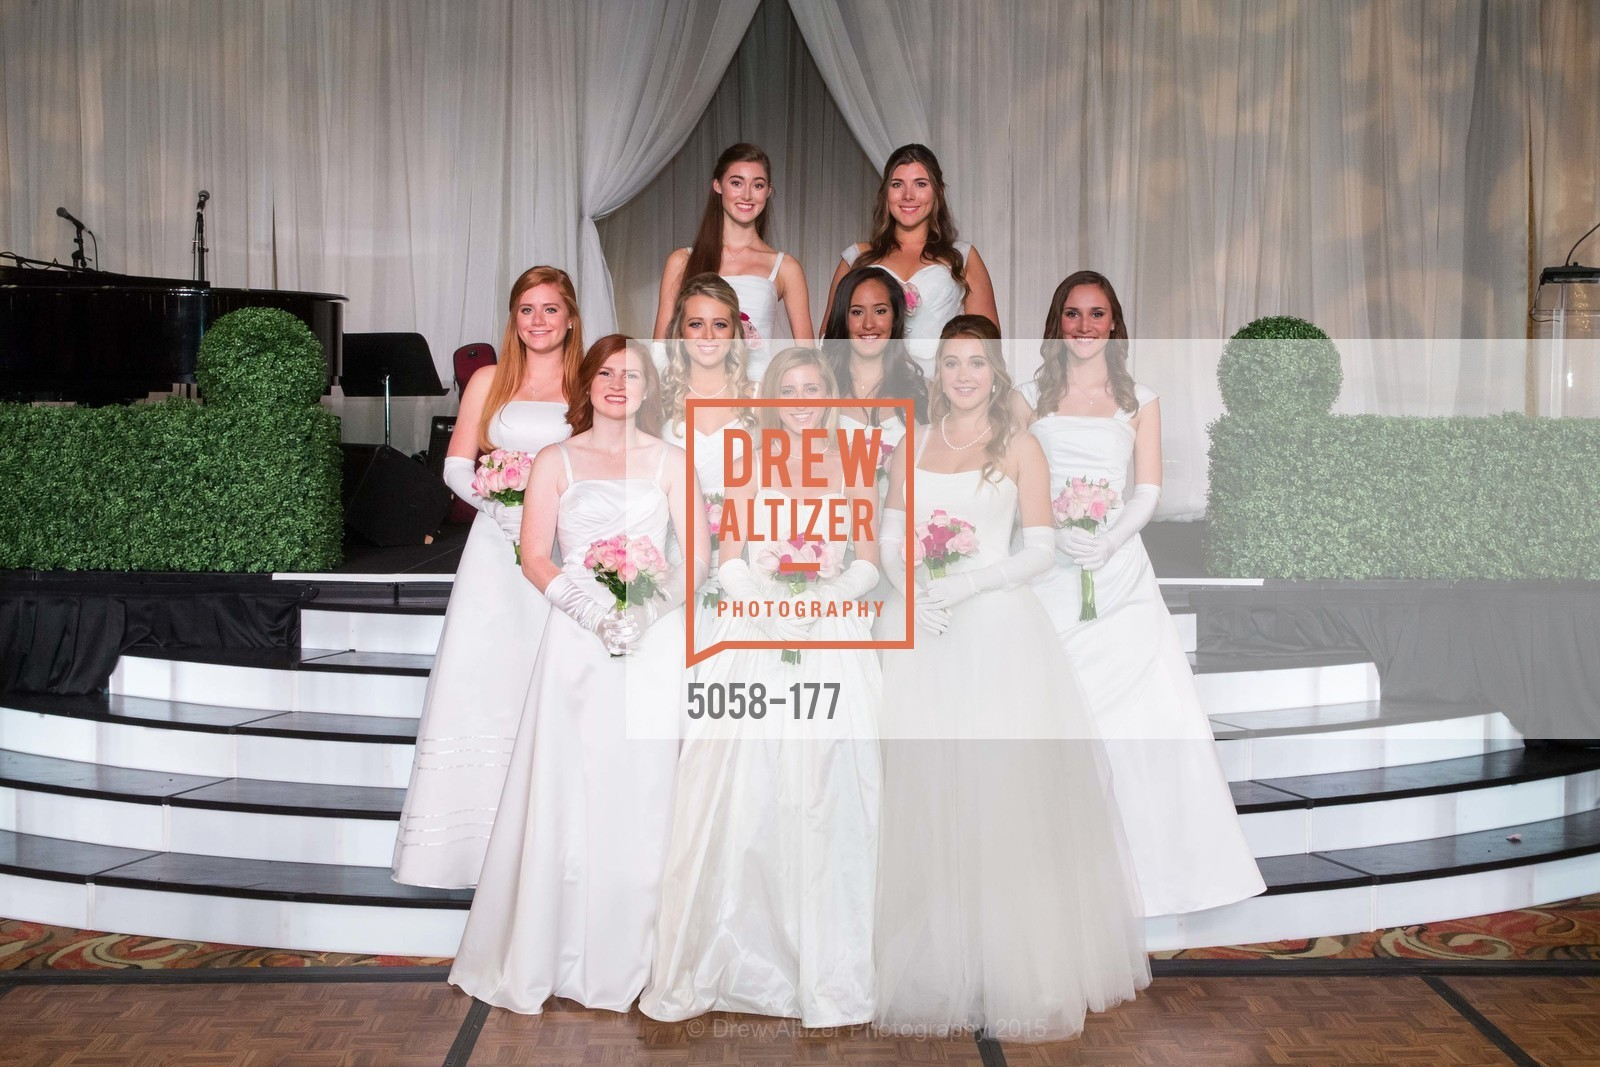 Curry Fisher, Jennifer Reynolds, Paloma Palmer, Camille Rich, Elizabeth Grayson, Solange Soward, Connolly Steigerwald, The 2015 San Francisco Debutante Ball, The Westin St. Francis San Francisco Union Square. 335 Powell St, June 20th, 2015,Drew Altizer, Drew Altizer Photography, full-service agency, private events, San Francisco photographer, photographer california